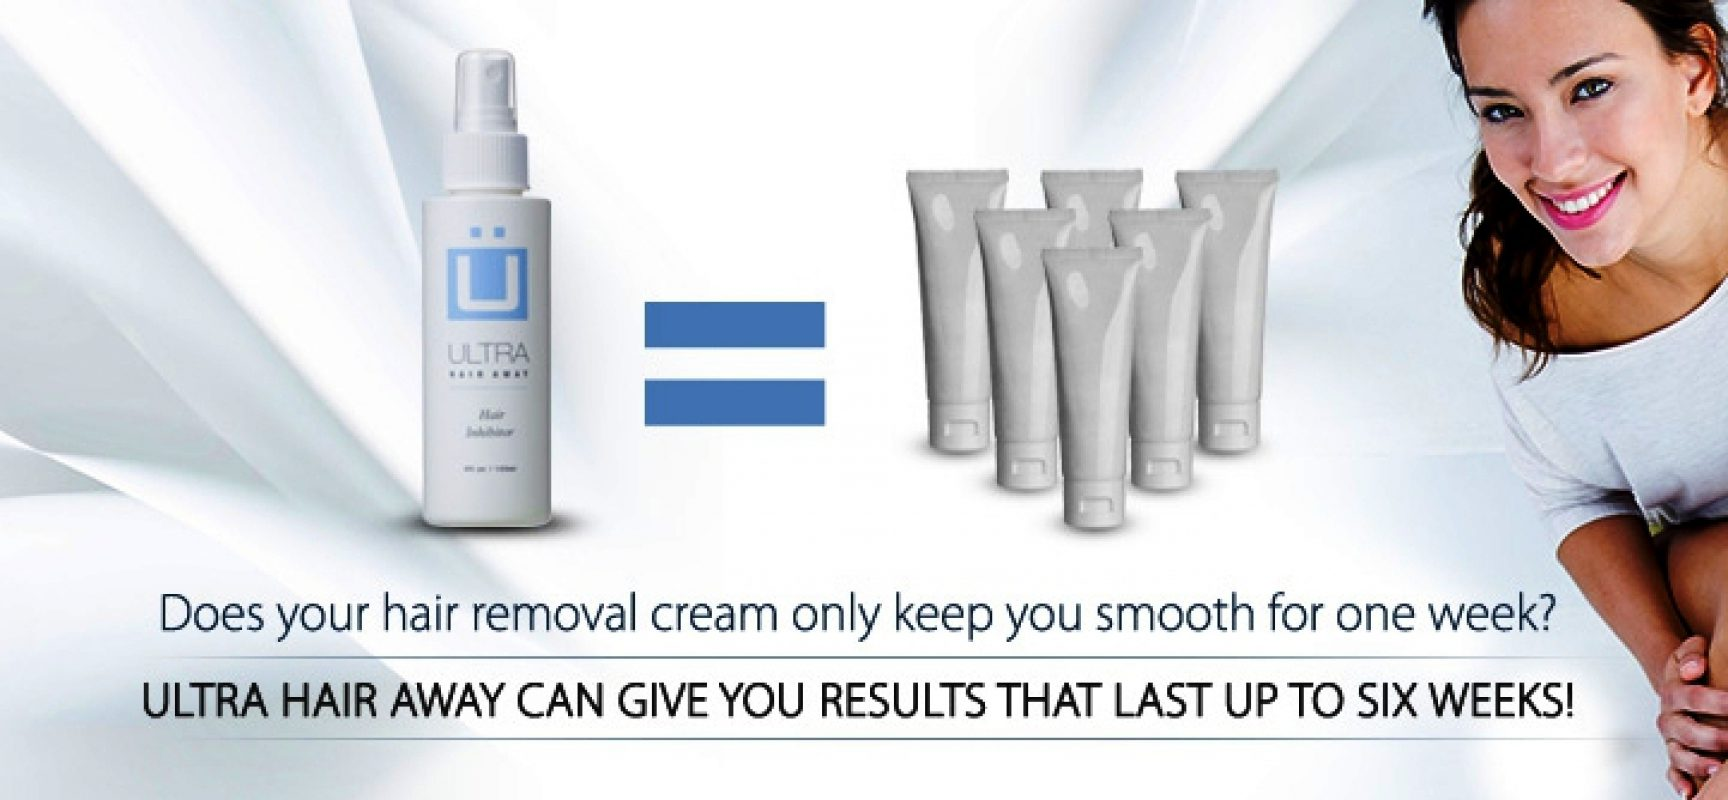 New Facts Permanent Hair Removal Review Of Ultra Hair Away